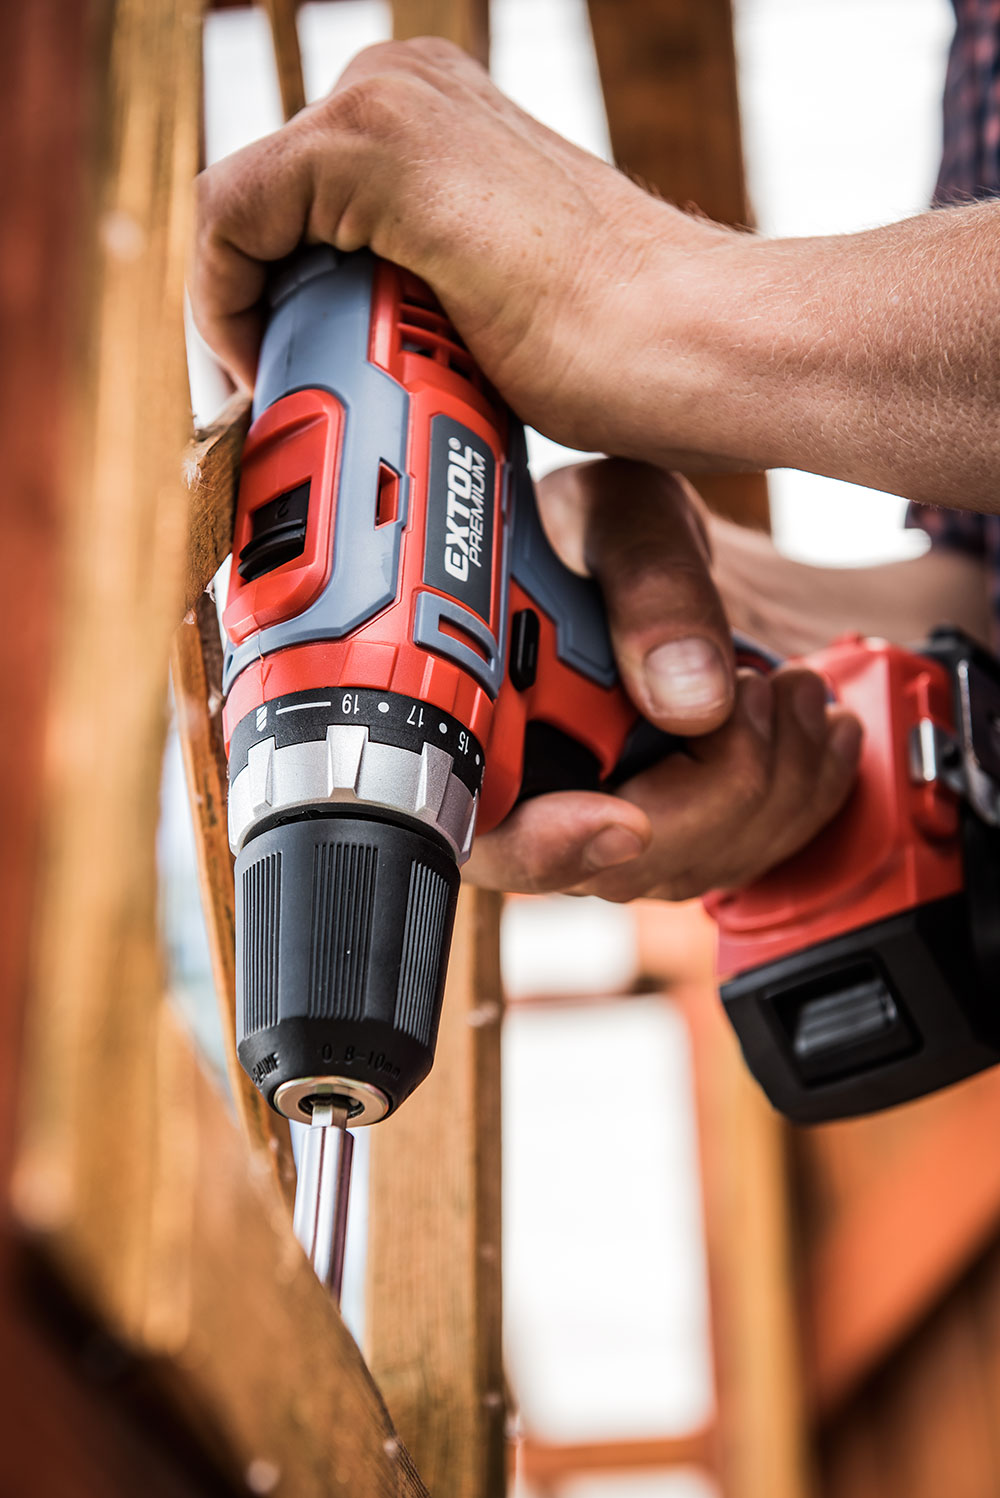 Extol Cordless Drill in action